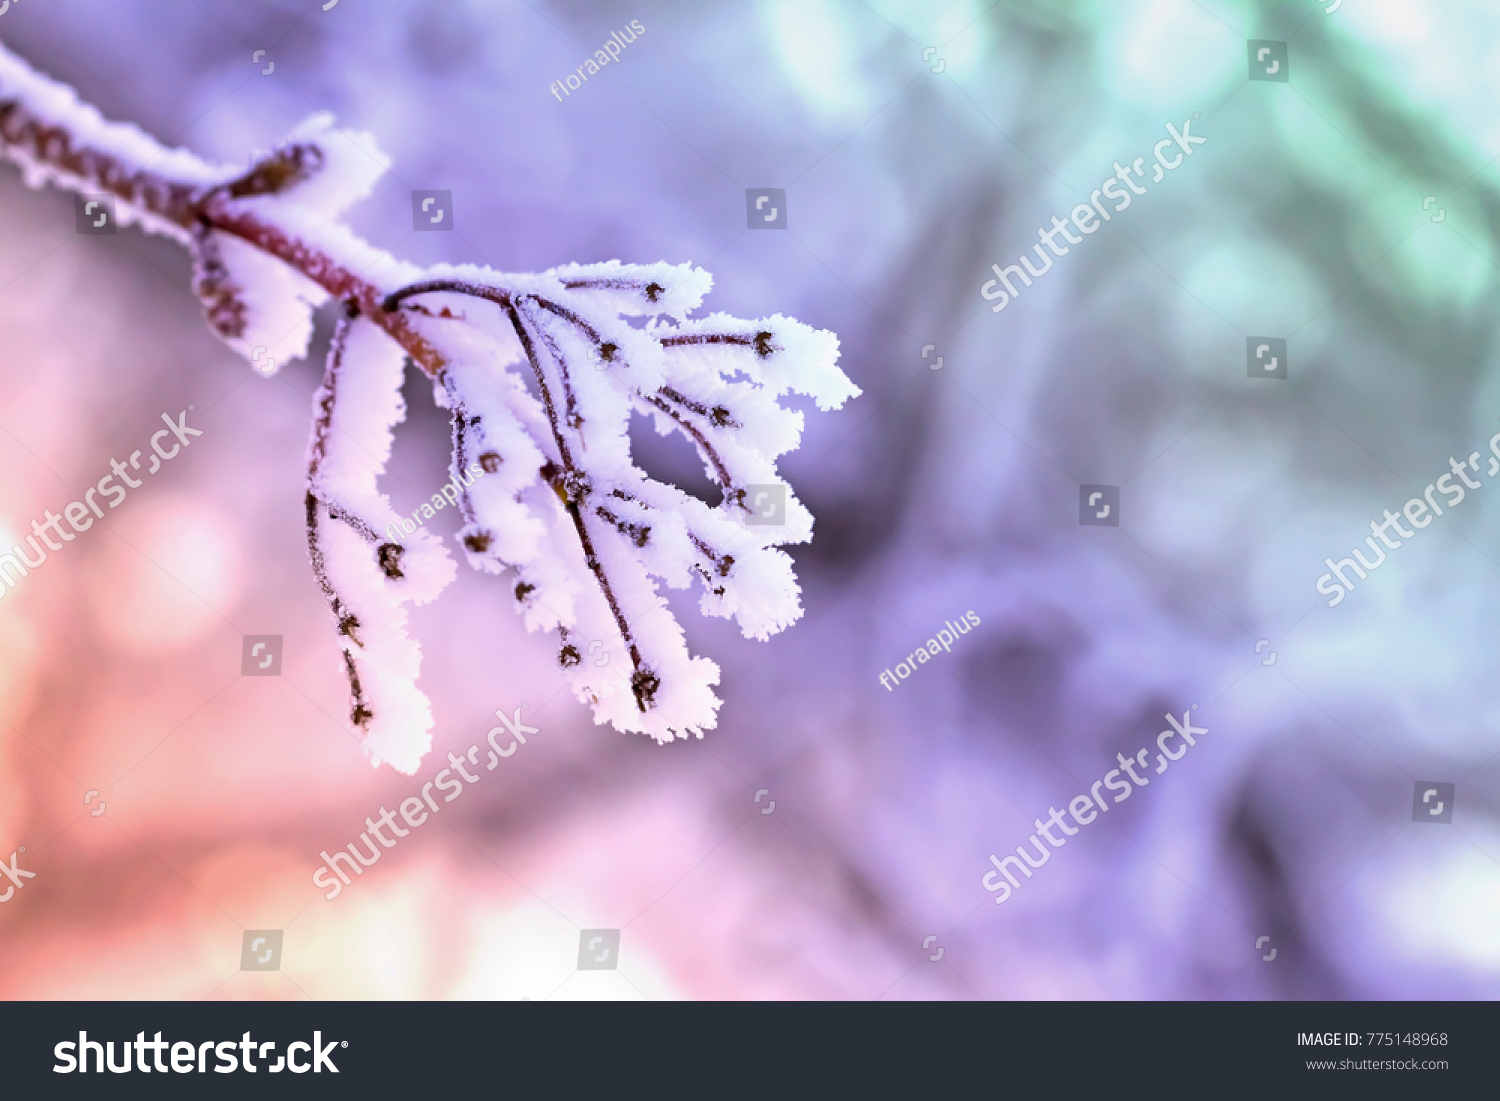 stock-photo-frosty-branch-the-maple-bran